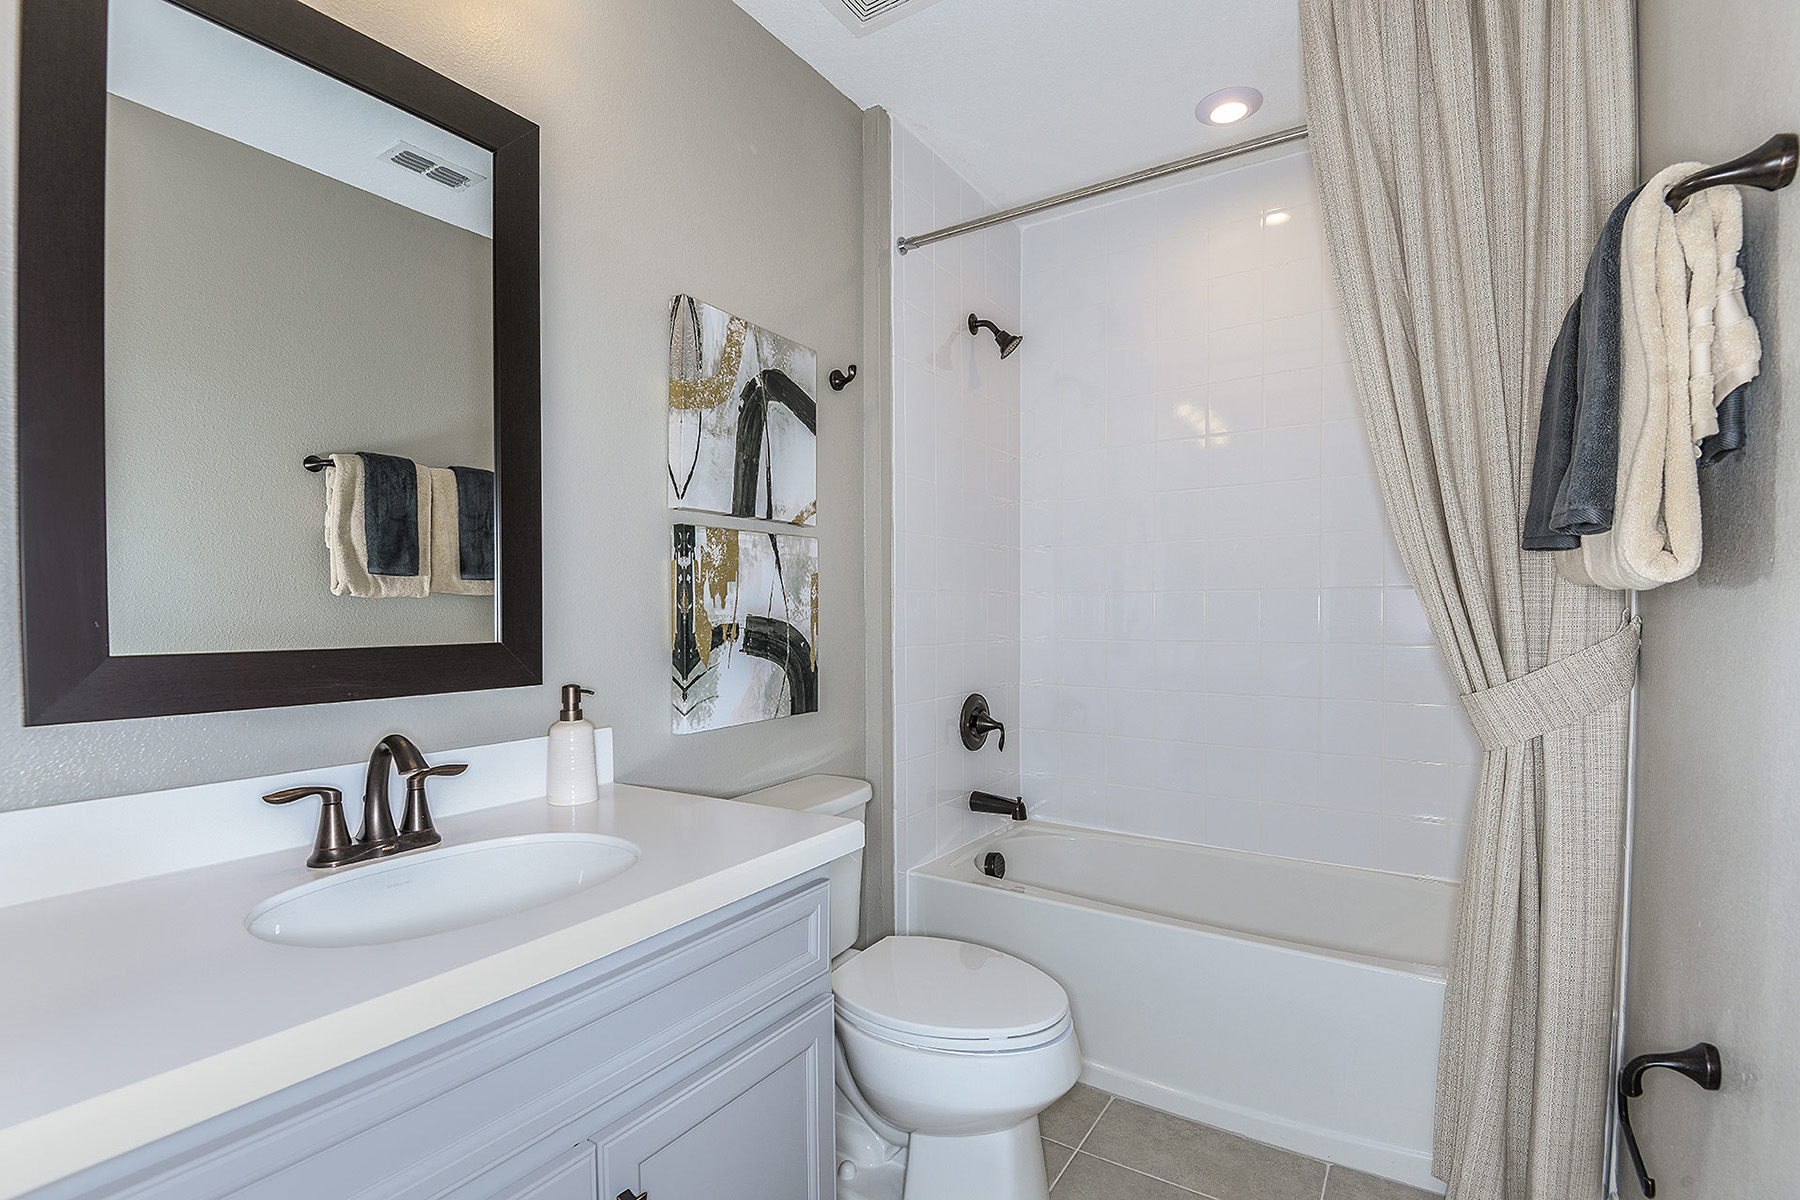 Ormond Plan Bath at Volanti in Wesley Chapel Florida by Mattamy Homes